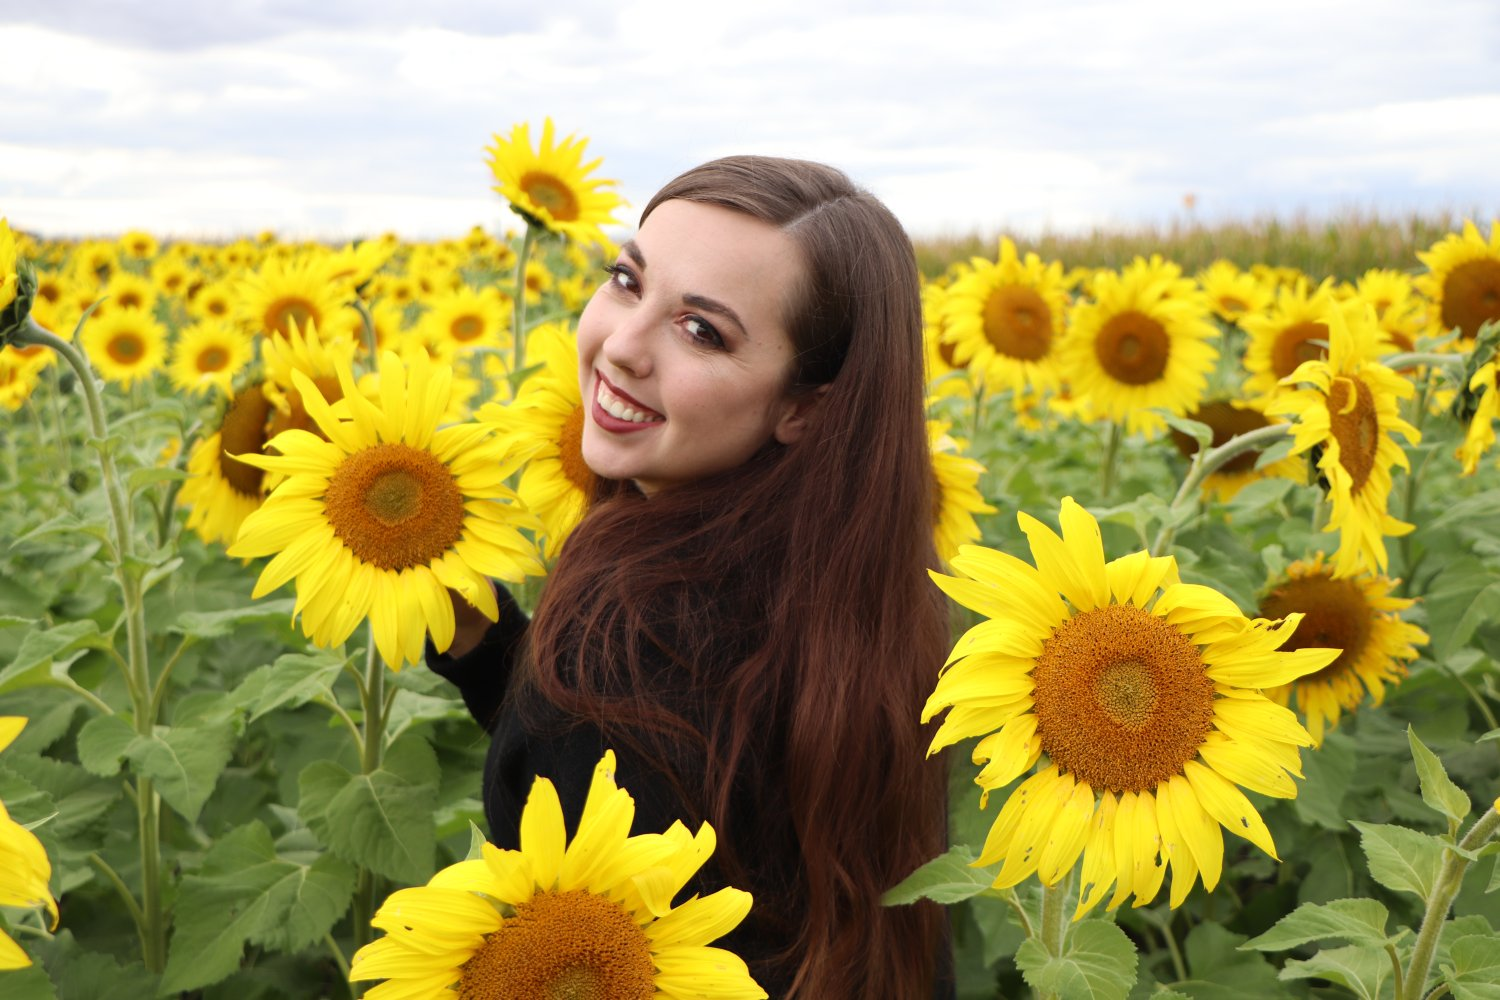 Picture of Jessica Ping-Wild in a sunflower field